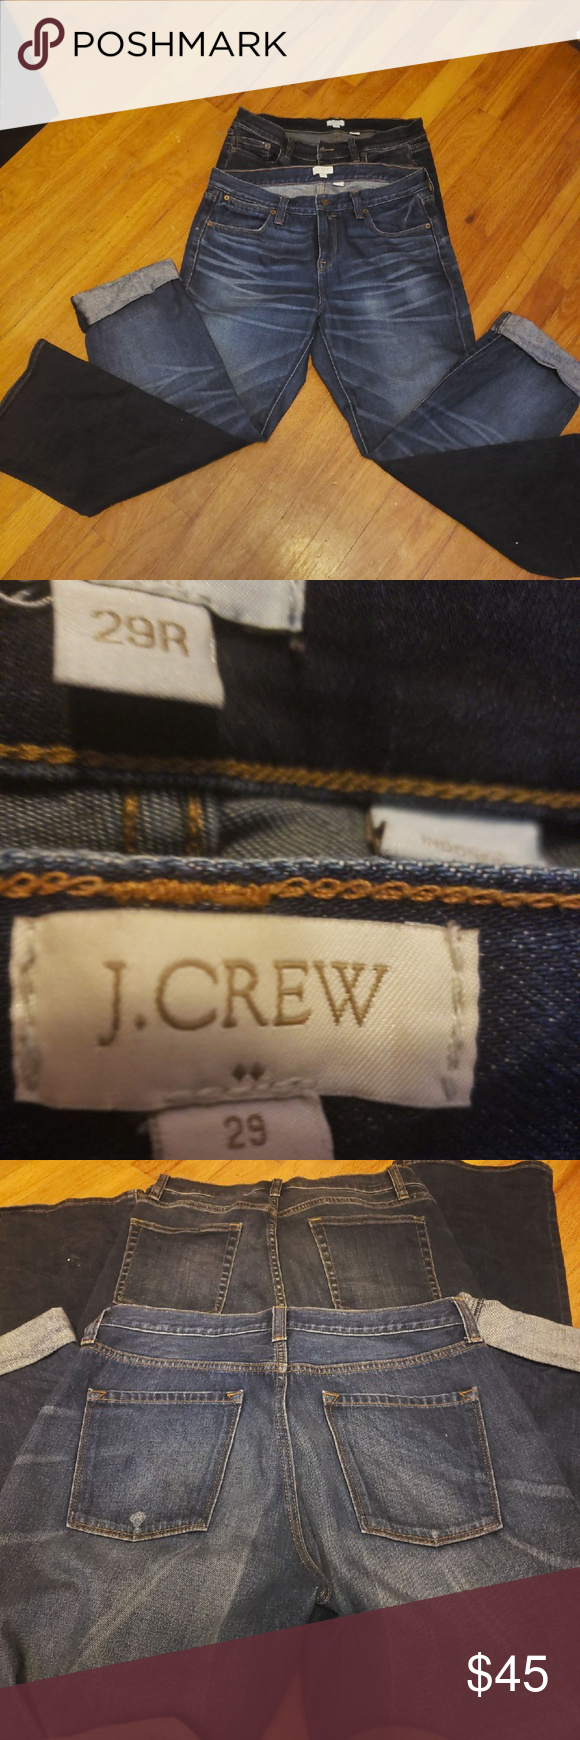 2 Pairs, Like New, Jcrew Jeans, Size 29 Lets double the fun woth these 2 pairs of J.Crew jeans!  PAI...